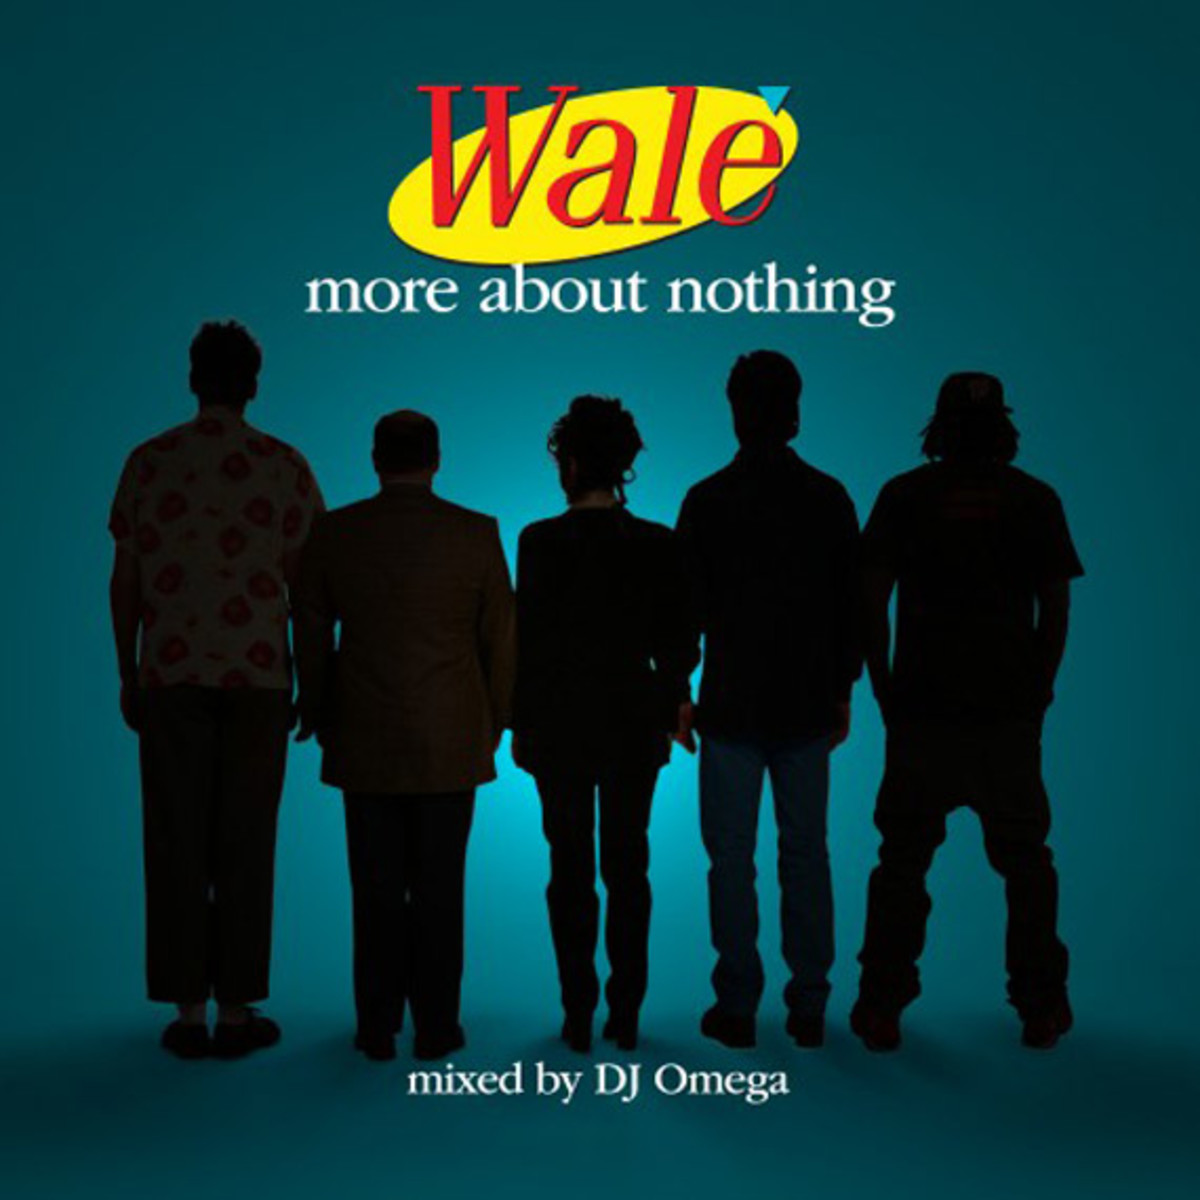 wale-more-about-nothing-mixtape-1a